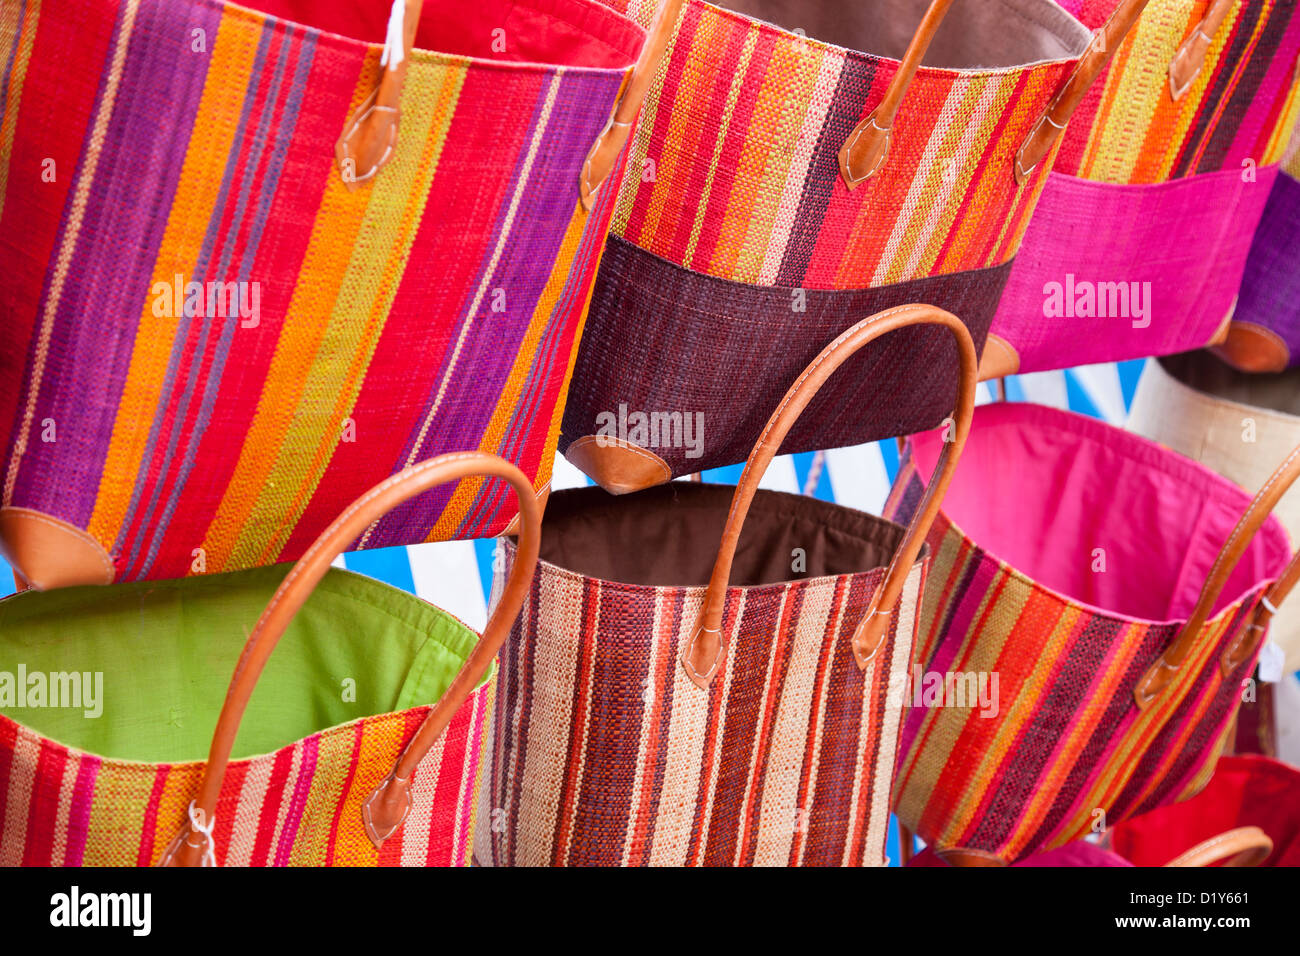 Hand woven bags for sale at the market in Saint Remy de-Provence, France Stock Photo